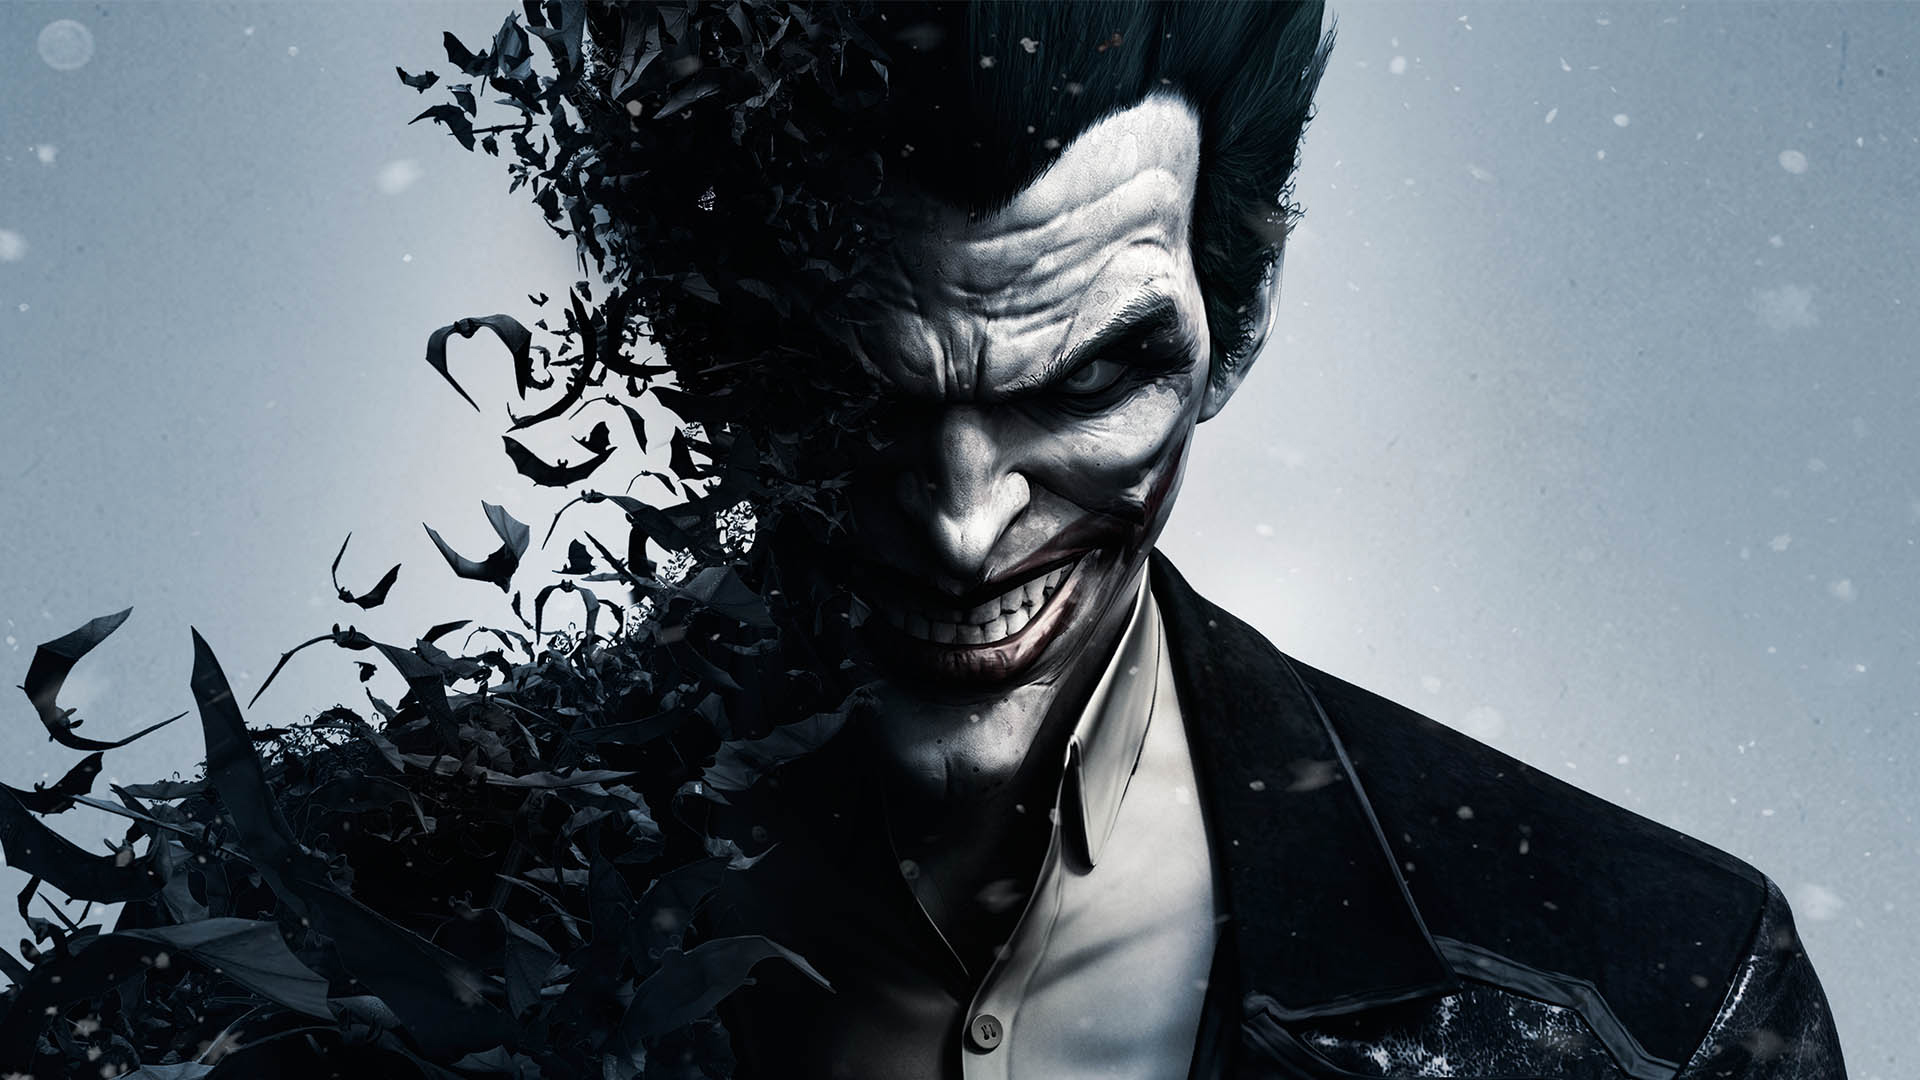 joker widescreen images hd wallpapers for background 1920x1080